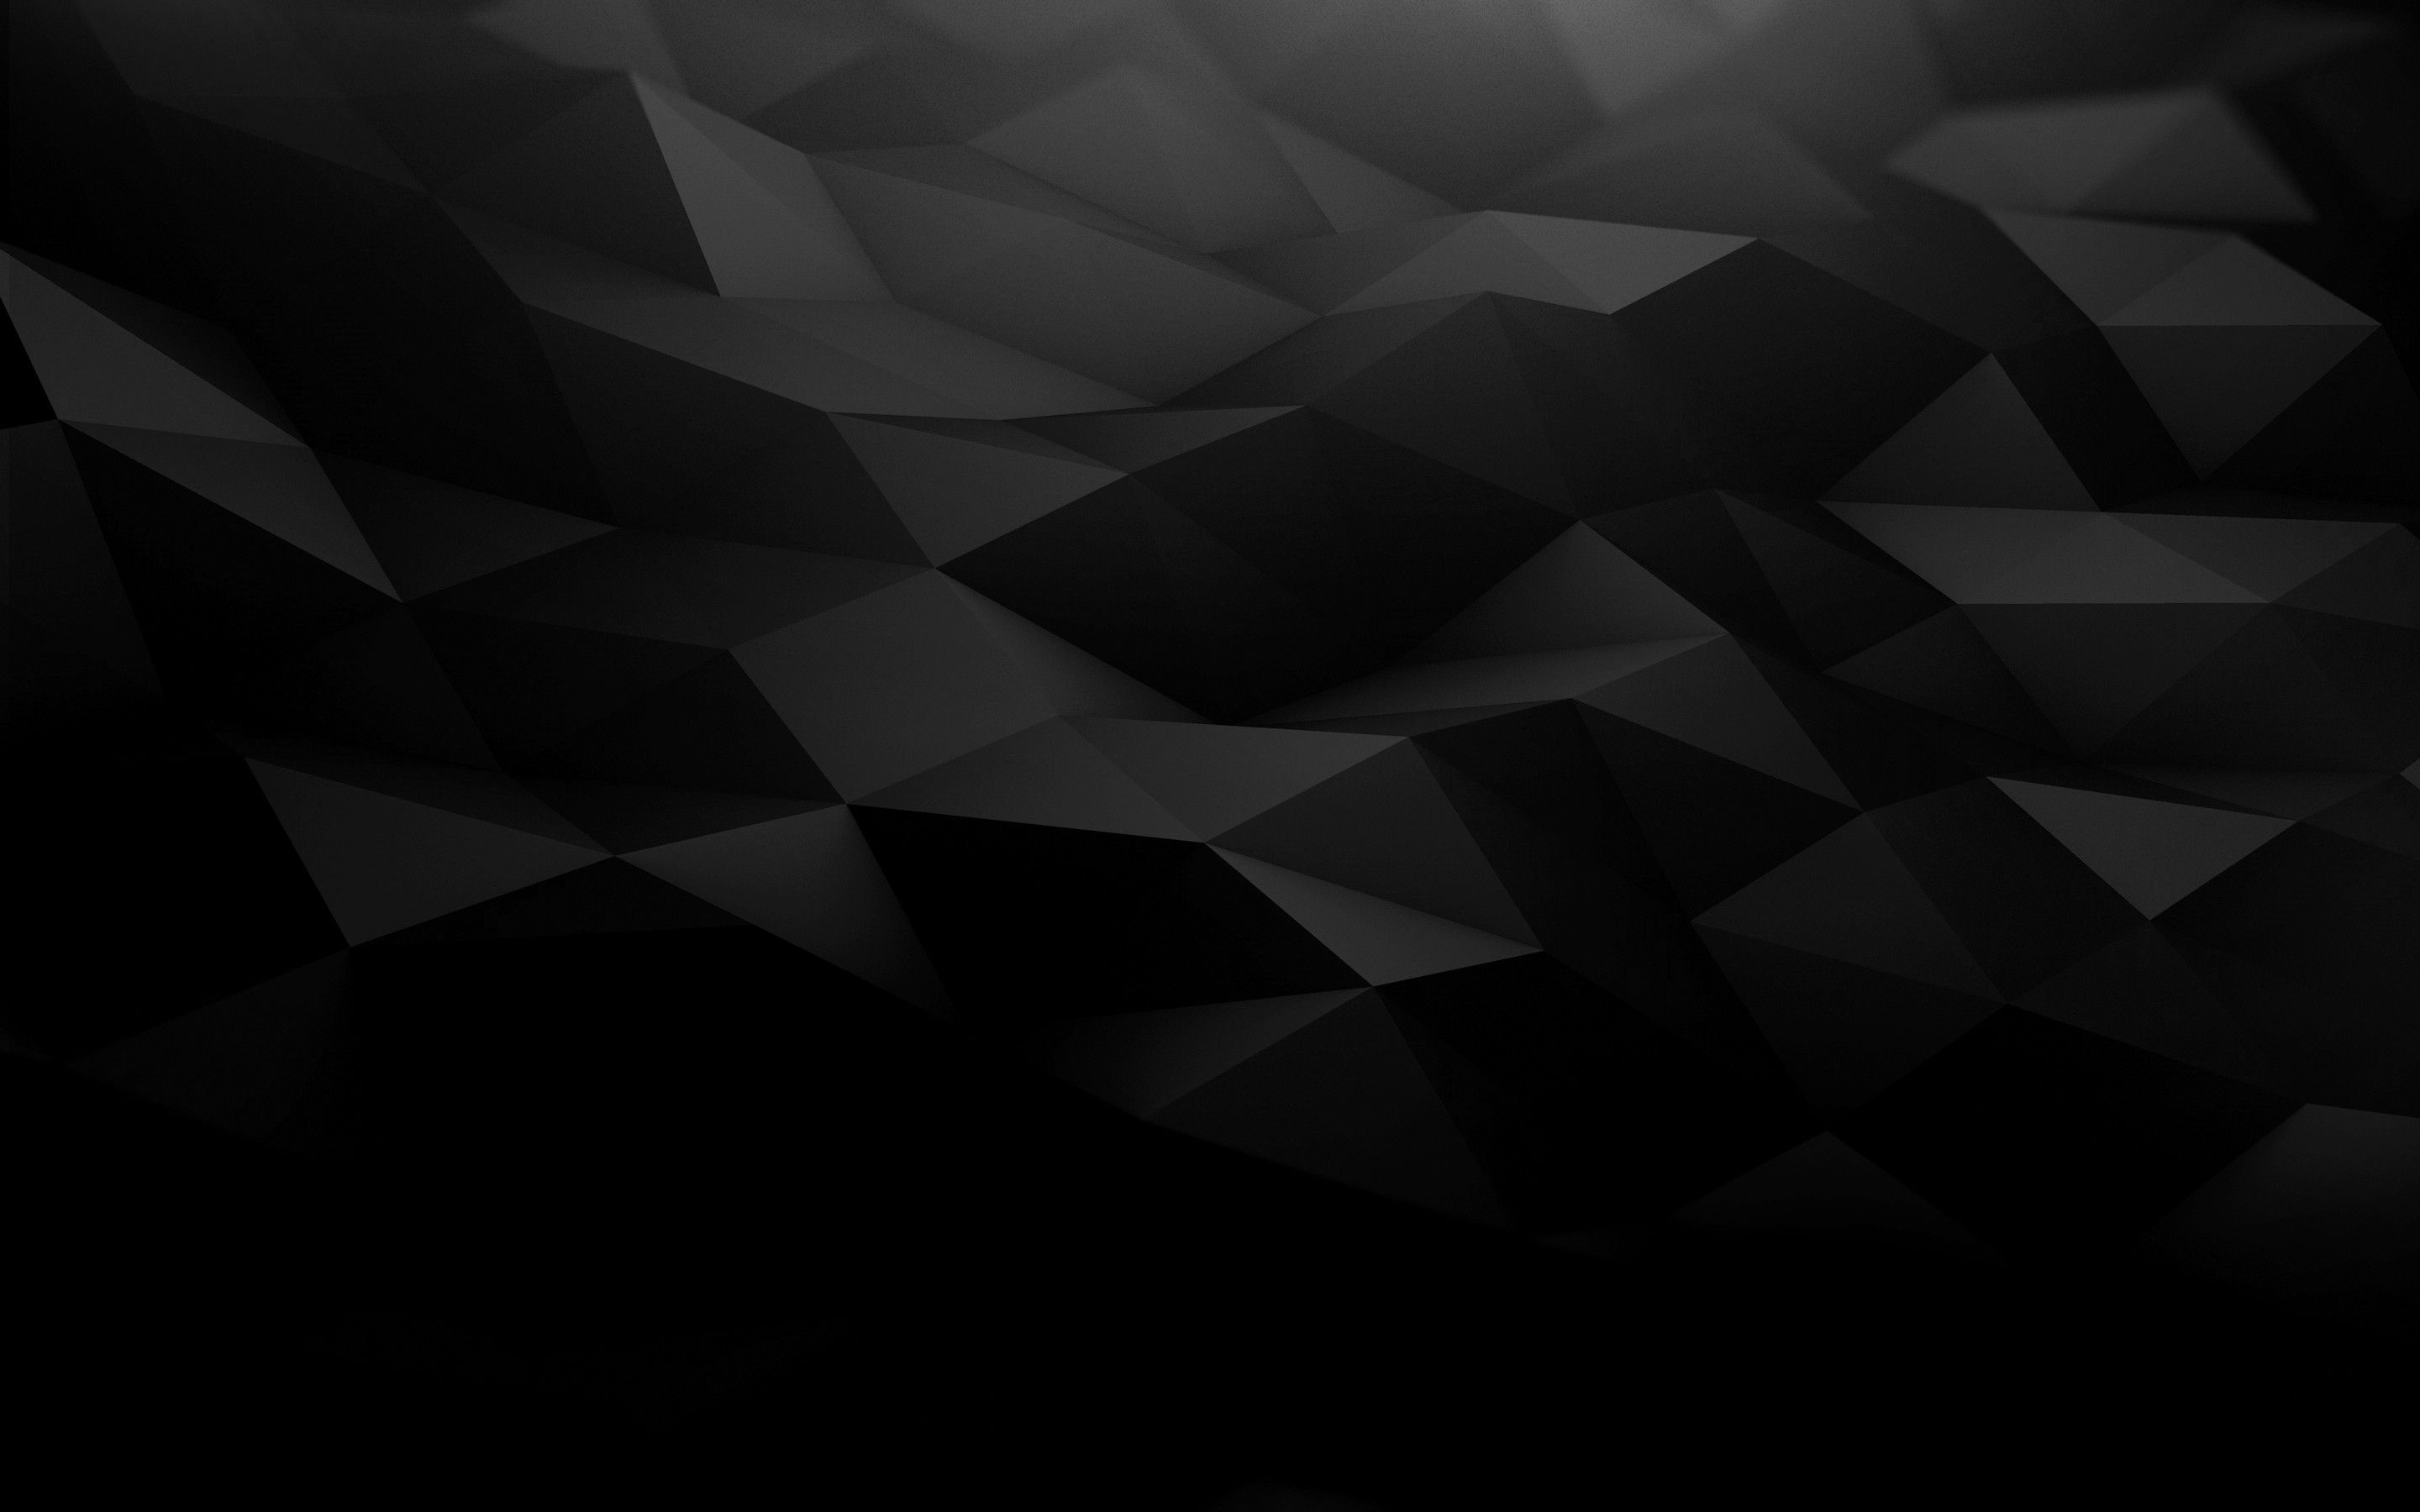 Abstract Black Triangle Wallpaper